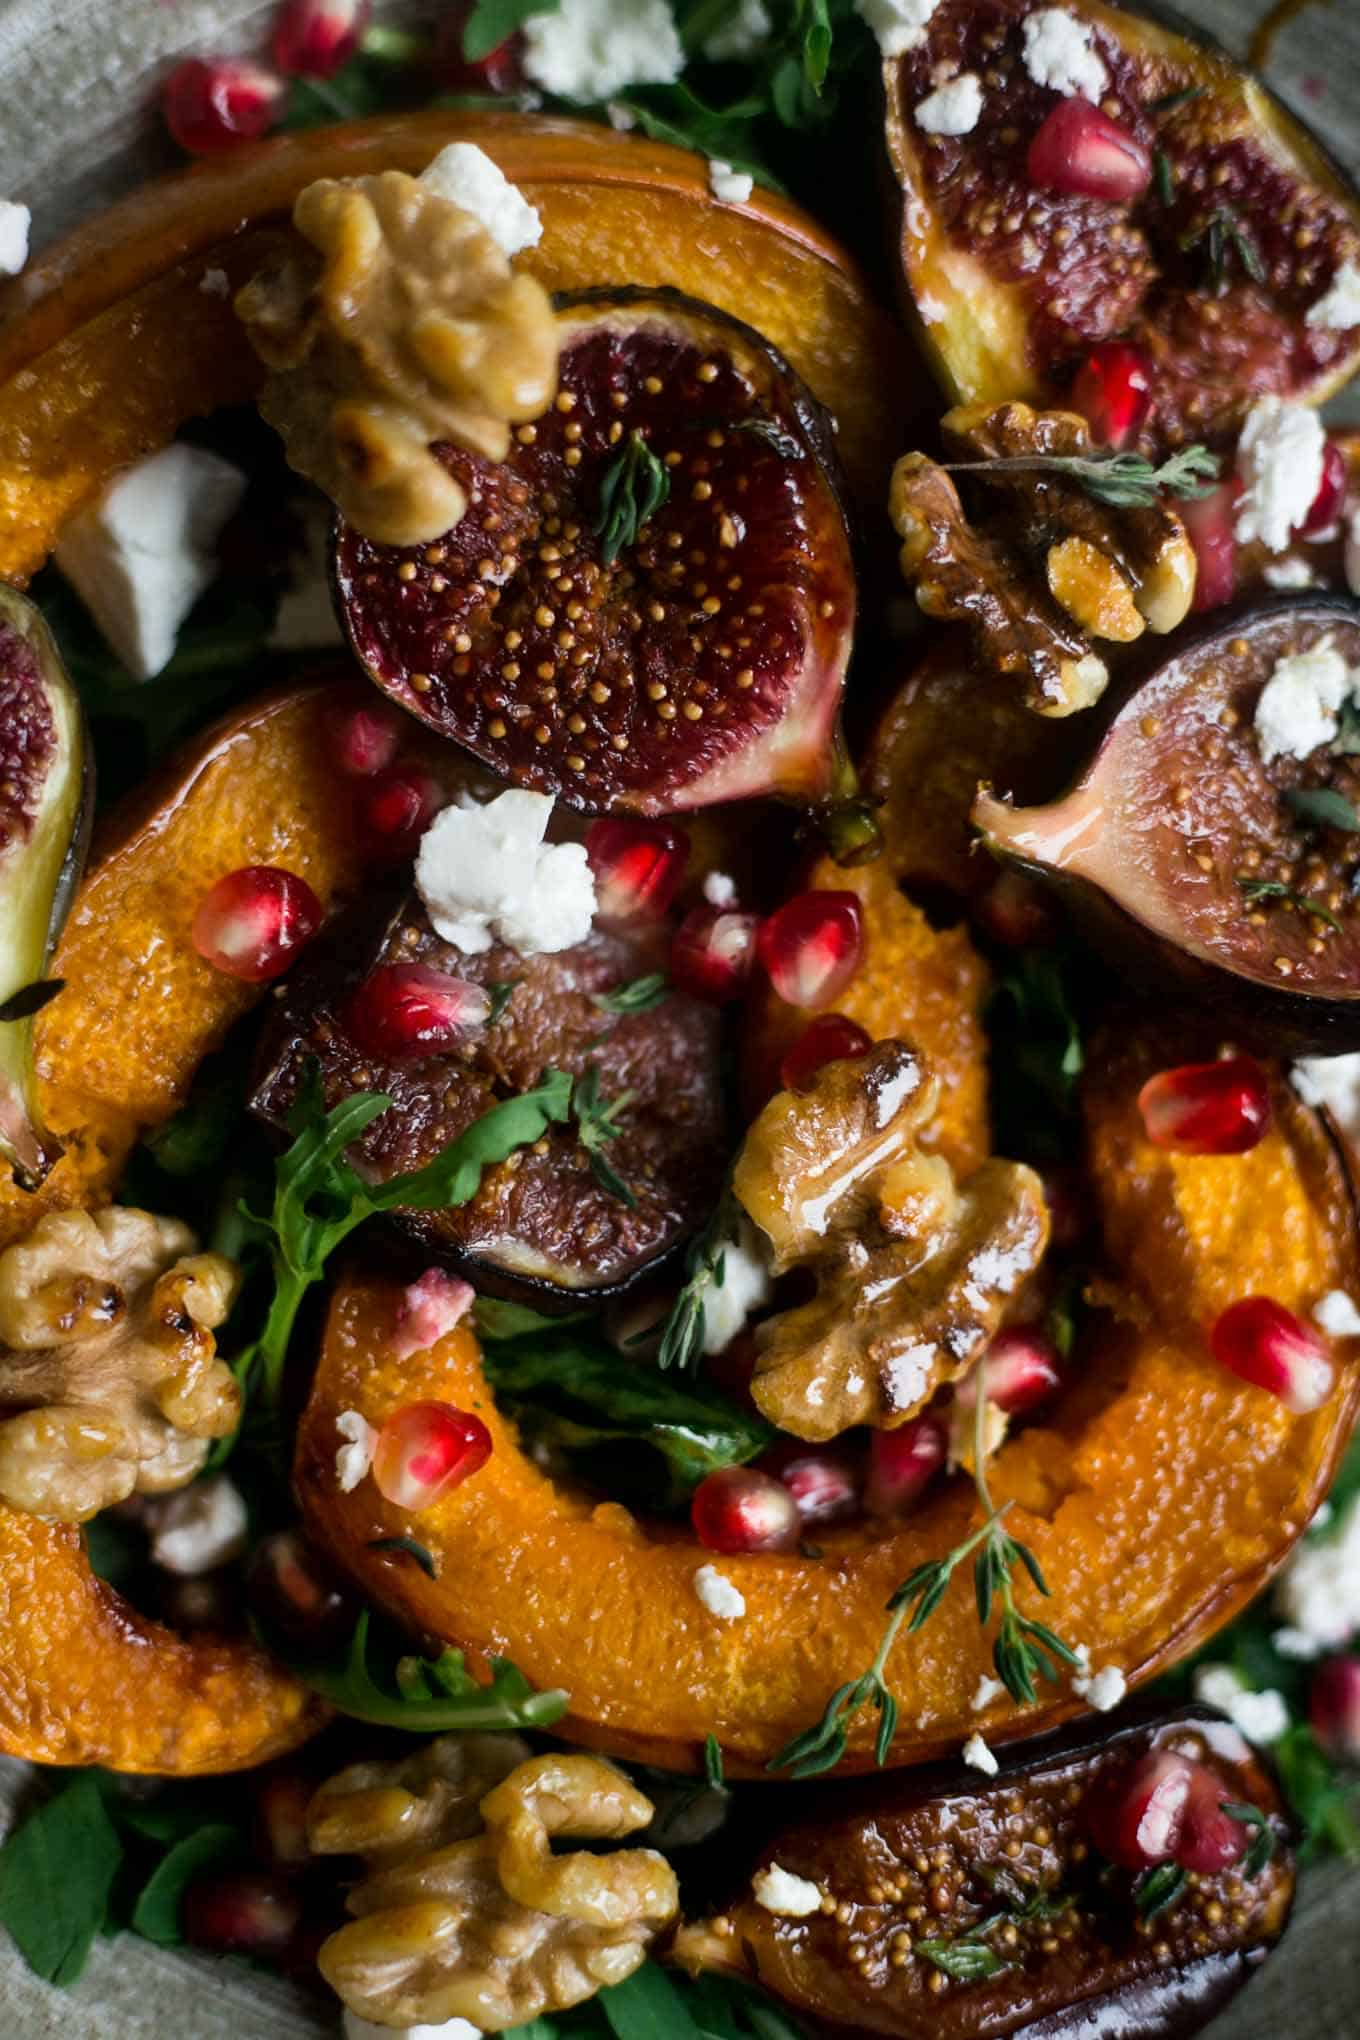 Roasted pumpkin and walnut salad with #vegan feta and figs | via @annabanana.co